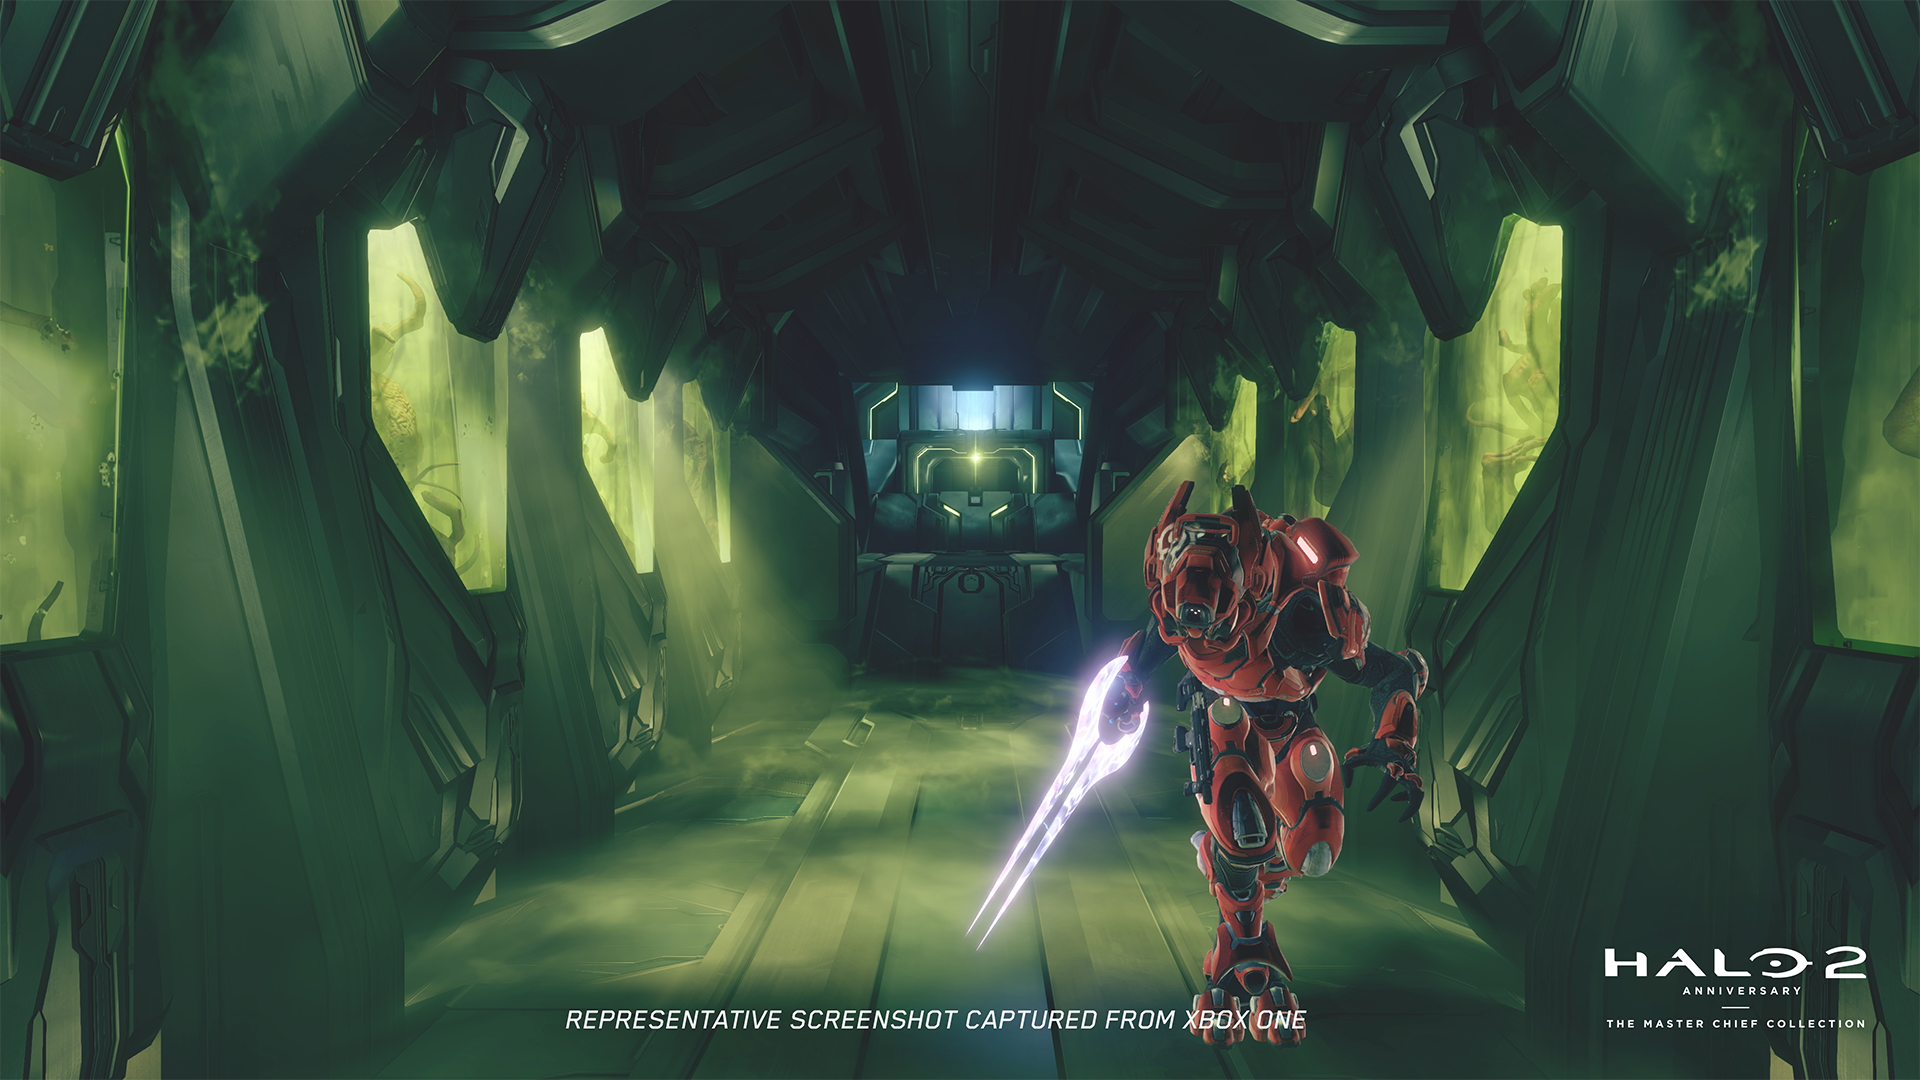 Halo-Master-Chief-Collection-2020_Halo2Anniversary_Multiplayer_10_Watermarked_1920x1080